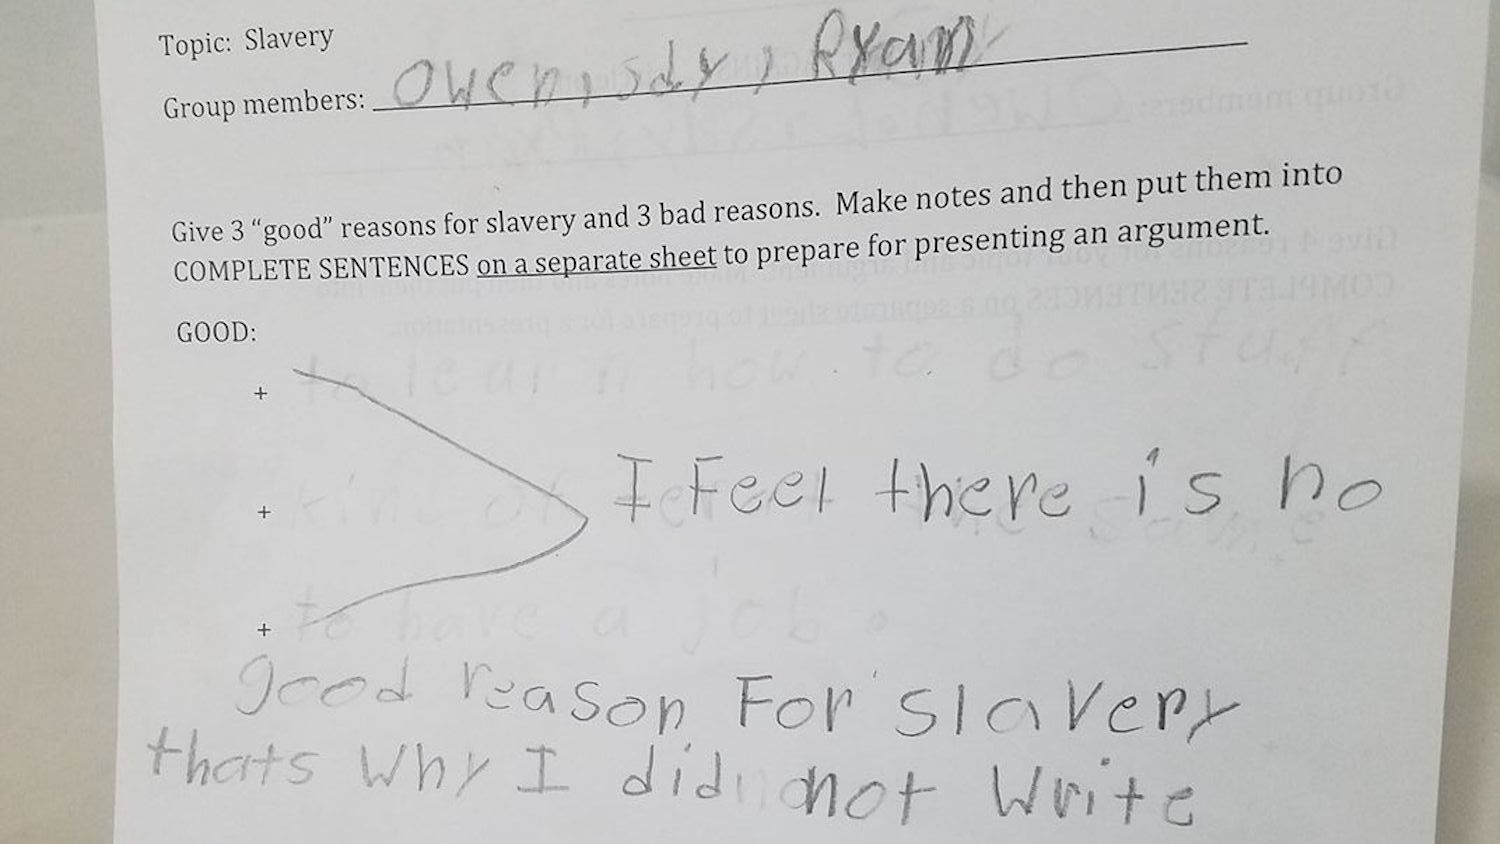 Teacher asks 4th graders to name good reasons for